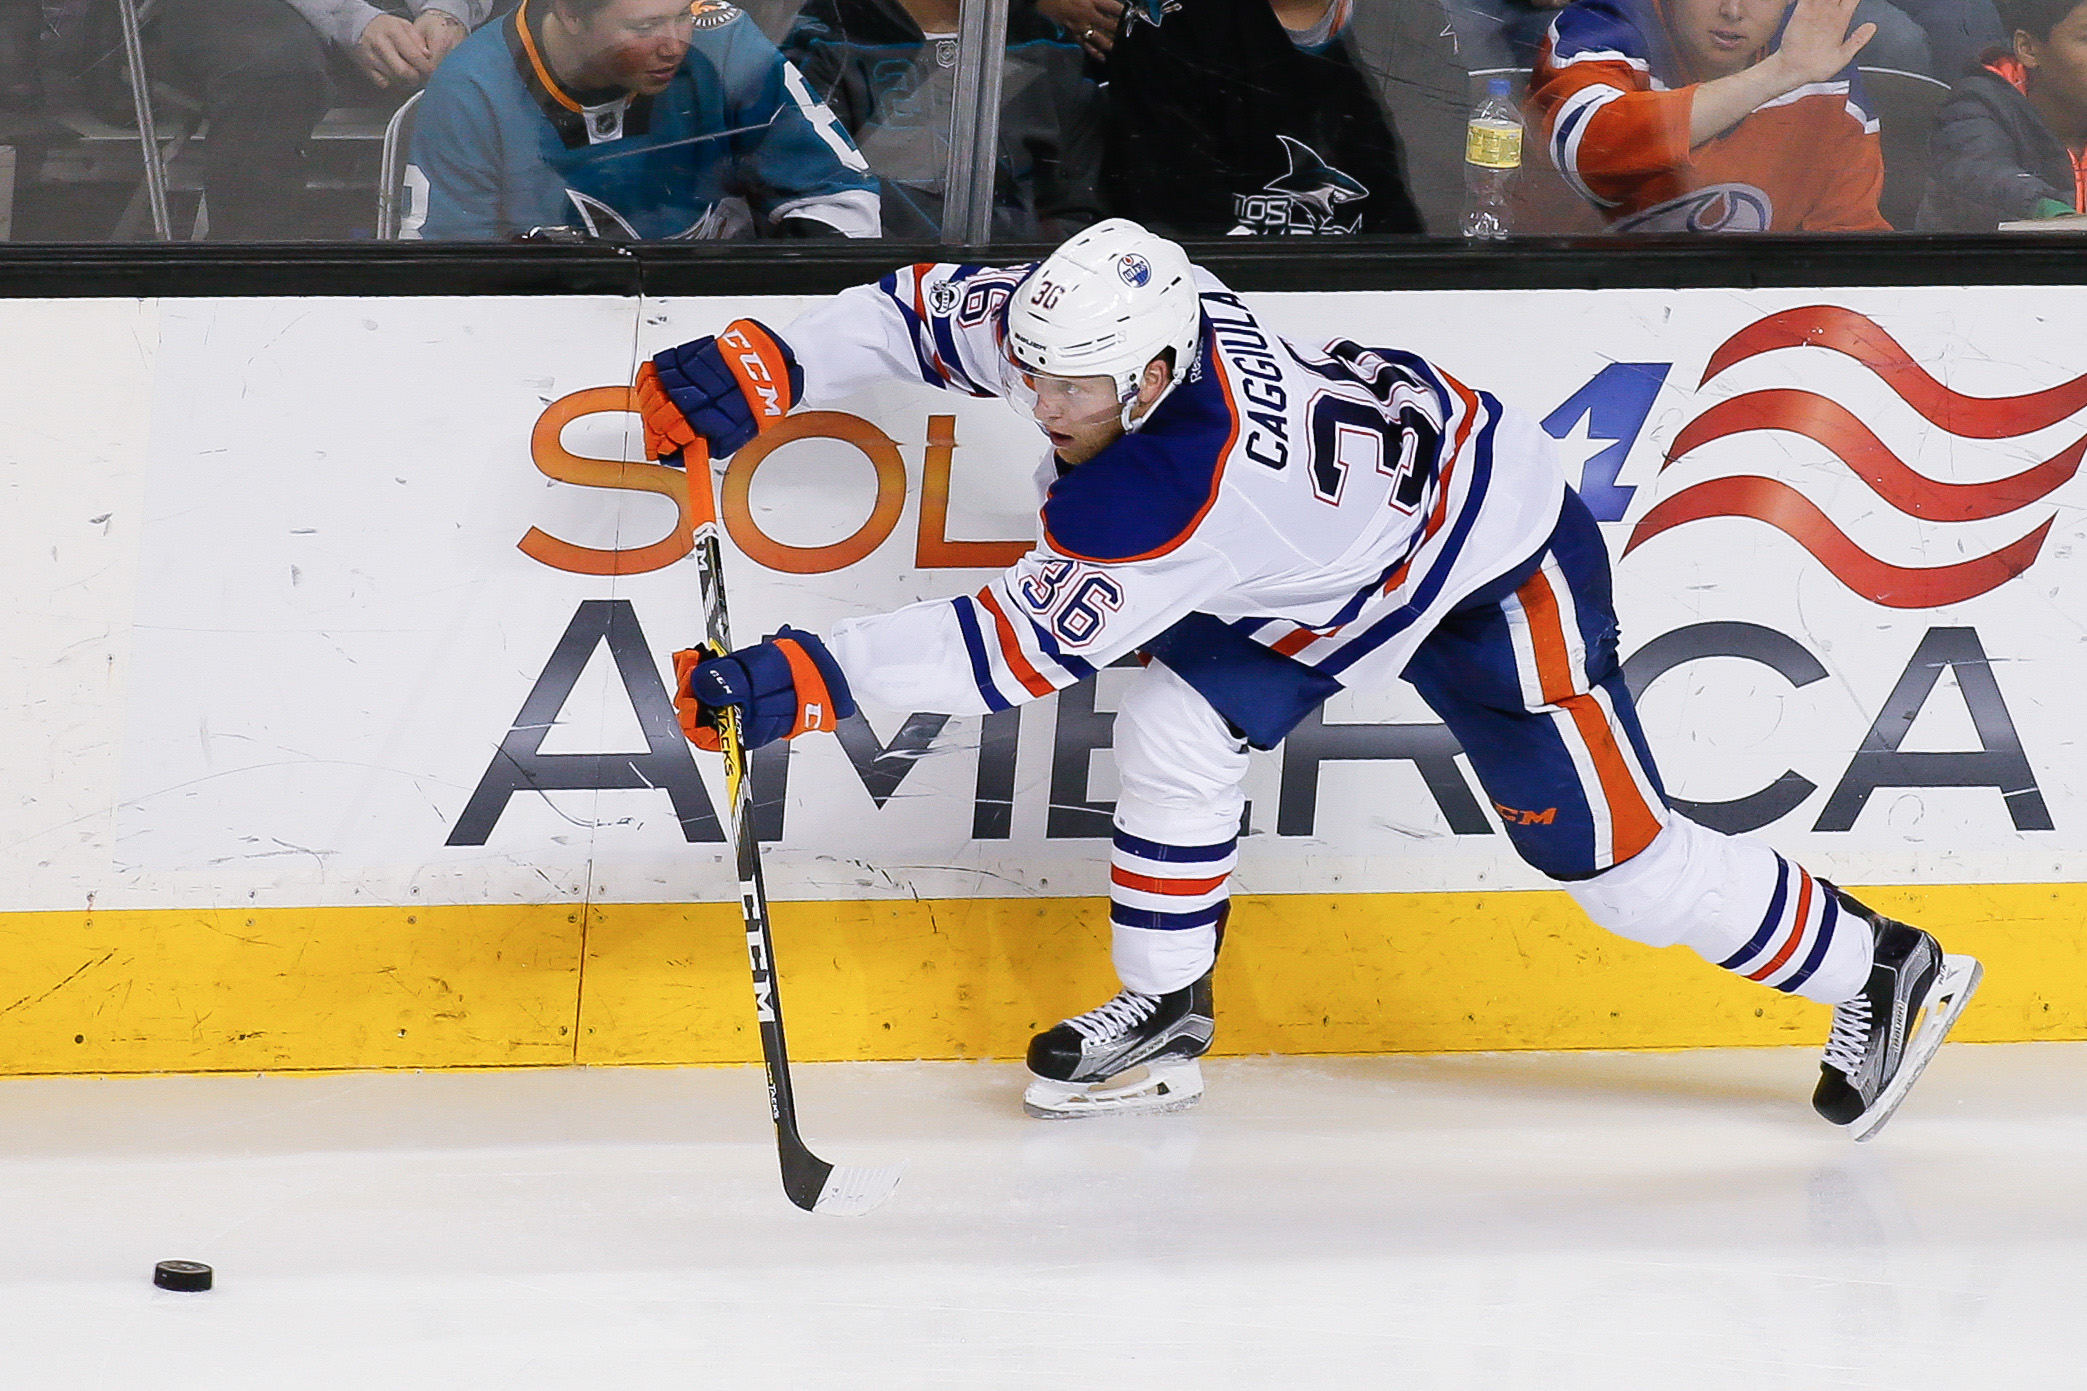 10007915-nhl-edmonton-oilers-at-san-jose-sharks